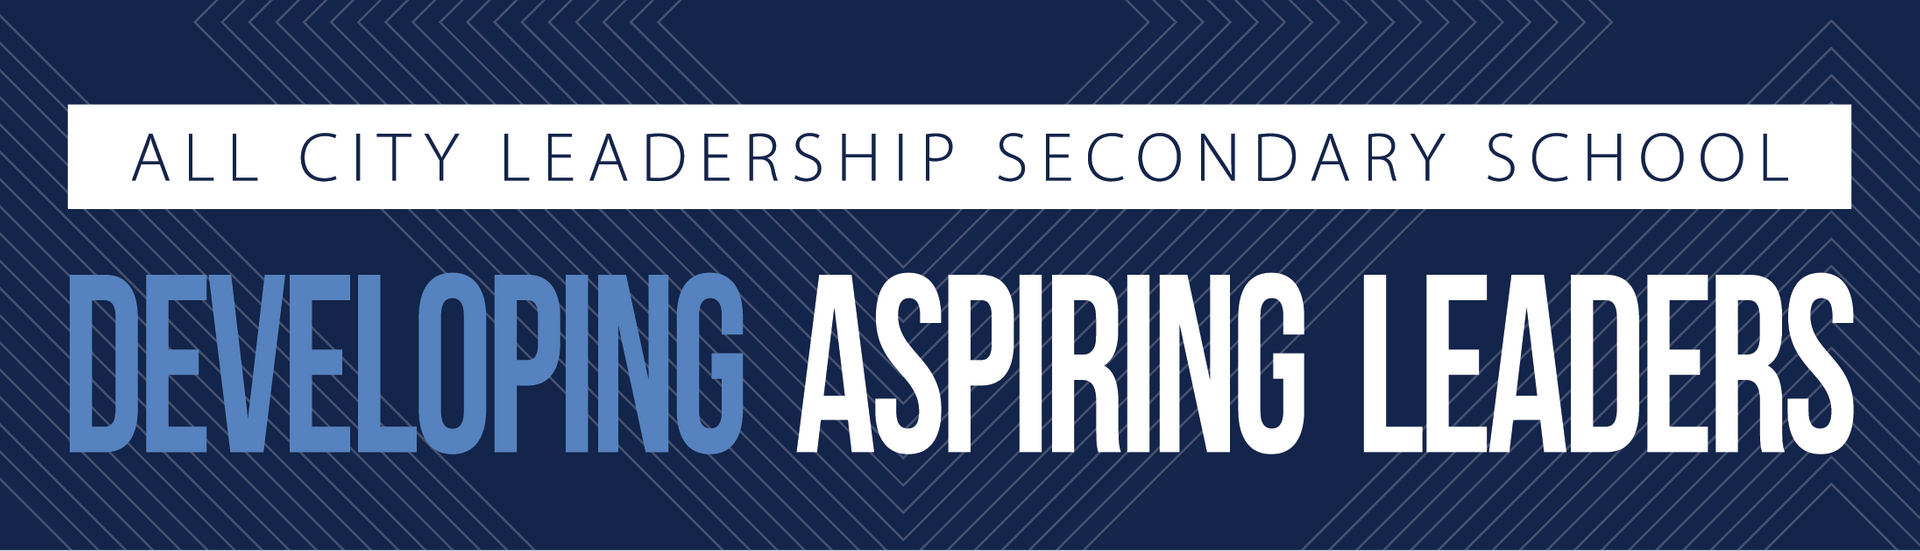 All City Leadership Secondary School banner: Developing Aspiring Leaders